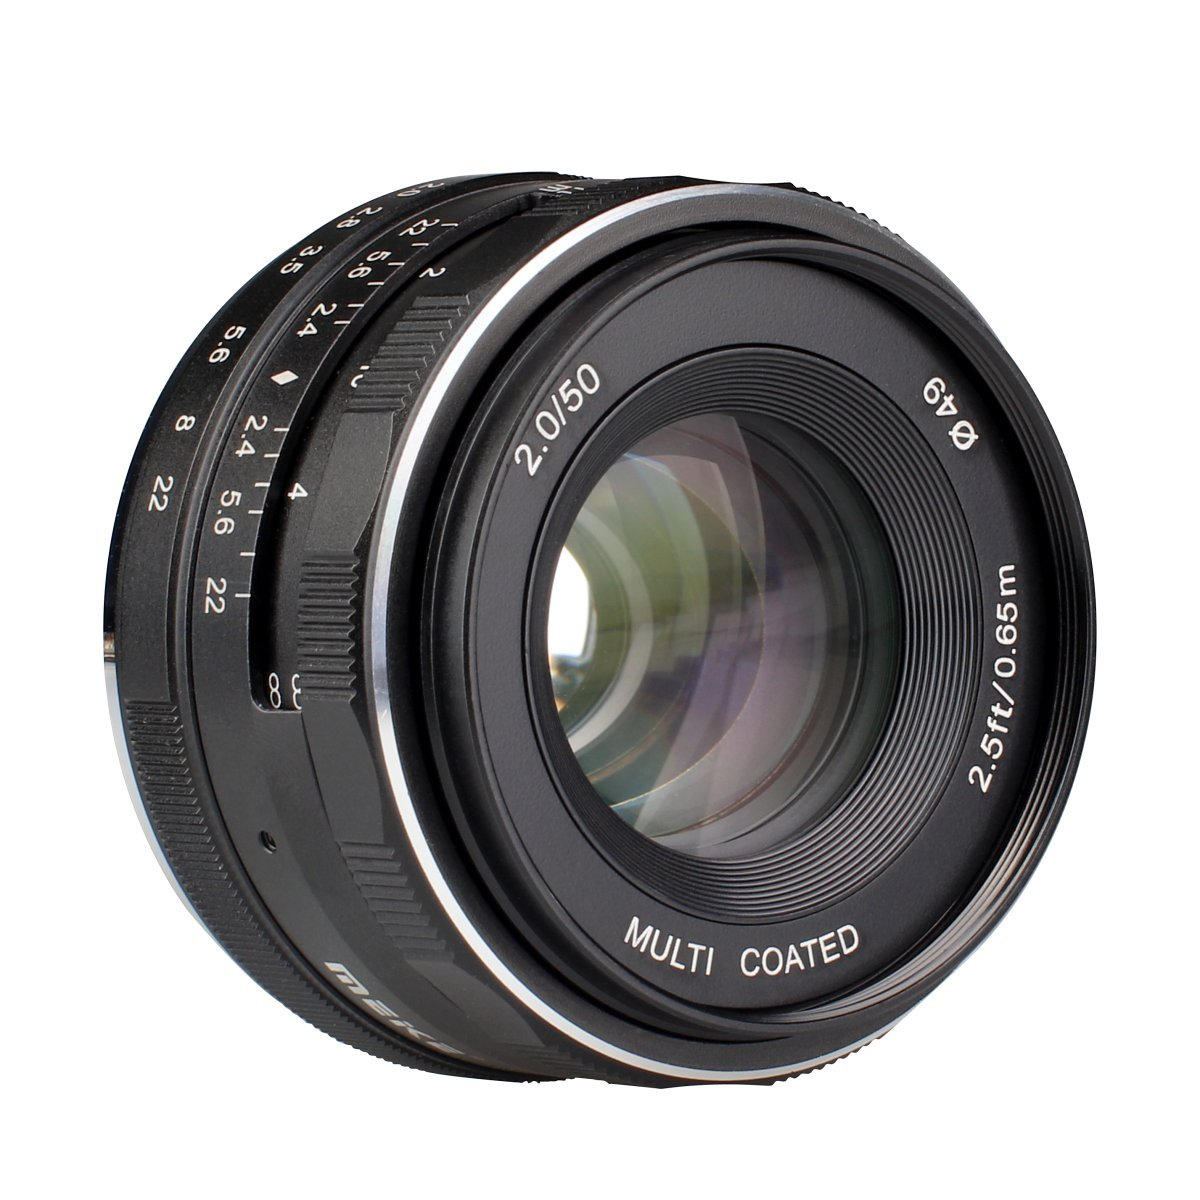 Meike 50mm f/2.0 Manual Focus Fixed Lens for Fujifilm-FX Mount Digital Cameras (X-A1/A2,X-e1/e2/e2s,X-M1,X-T1/T10,X-pro1/pro2 etc)